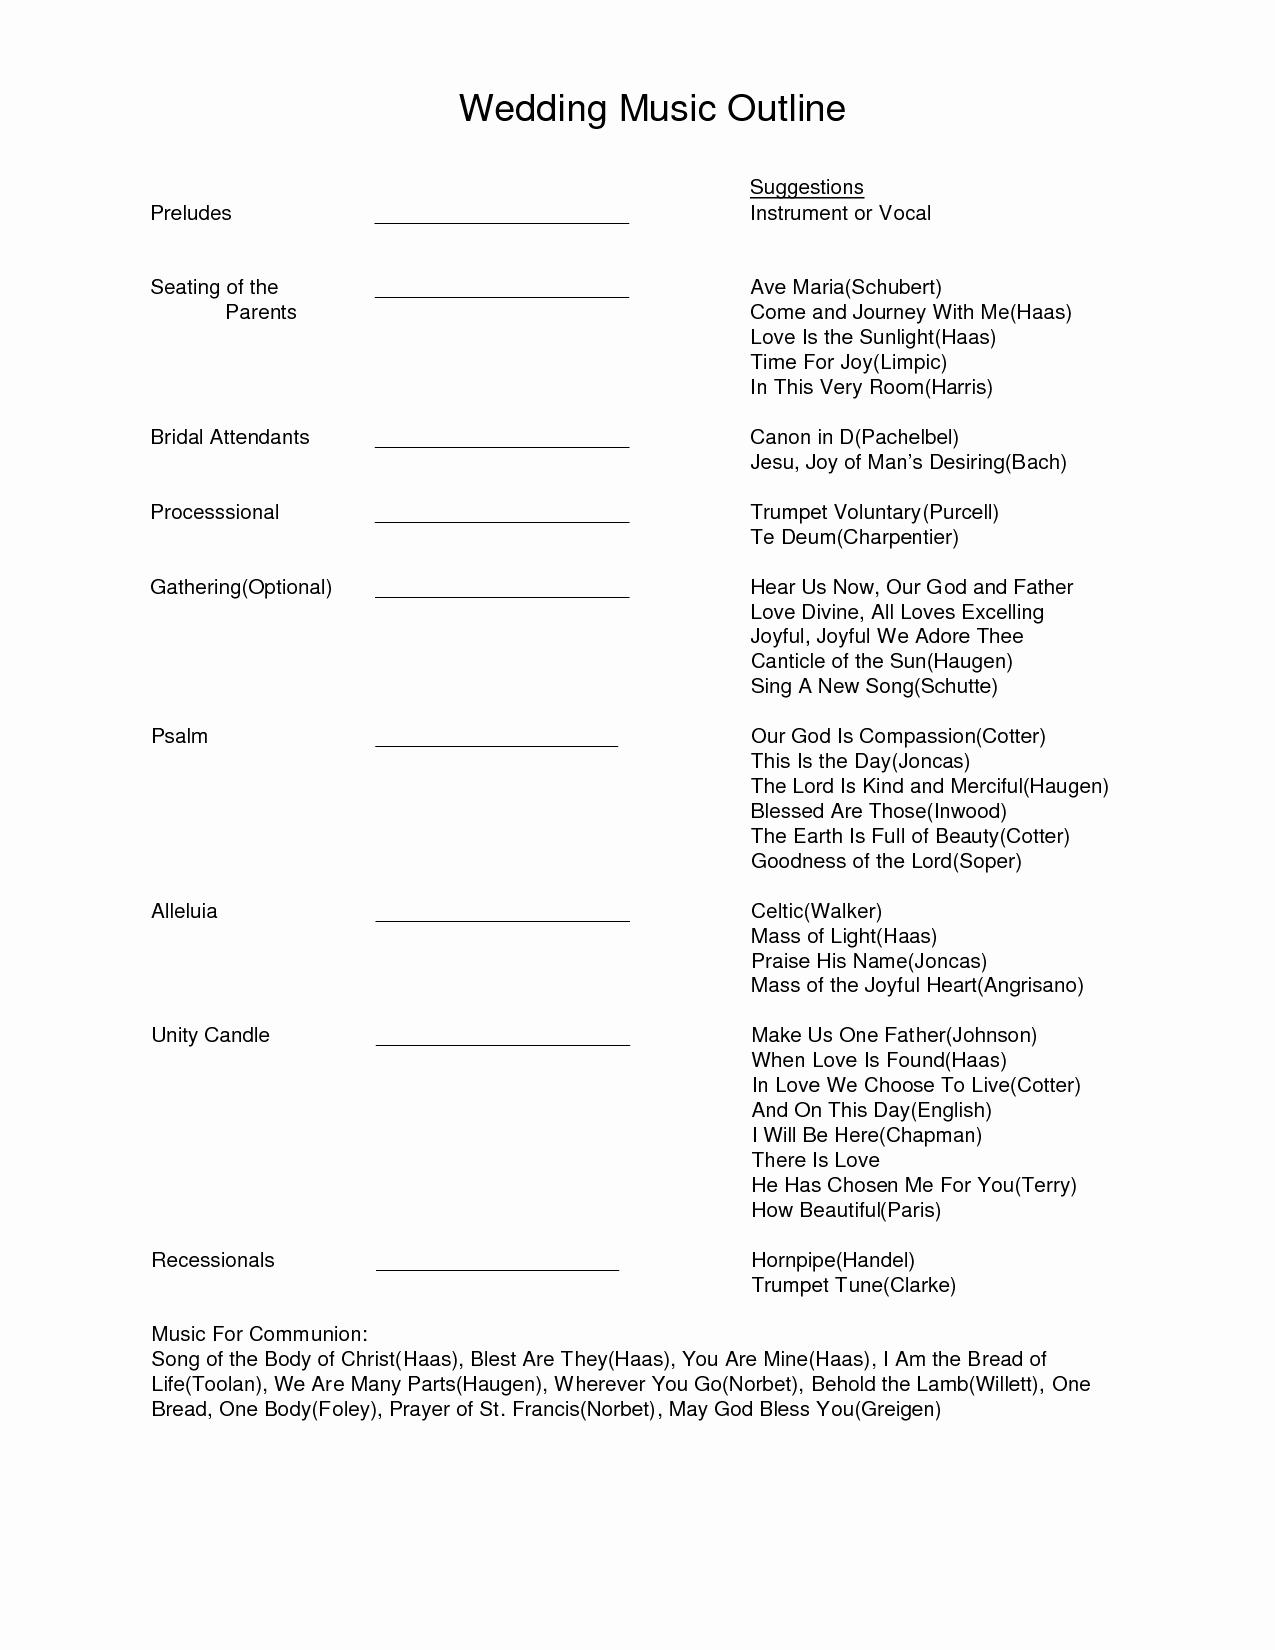 Wedding Ceremony song List Template Luxury Wedding Music Outline Document Sample Wedding Music